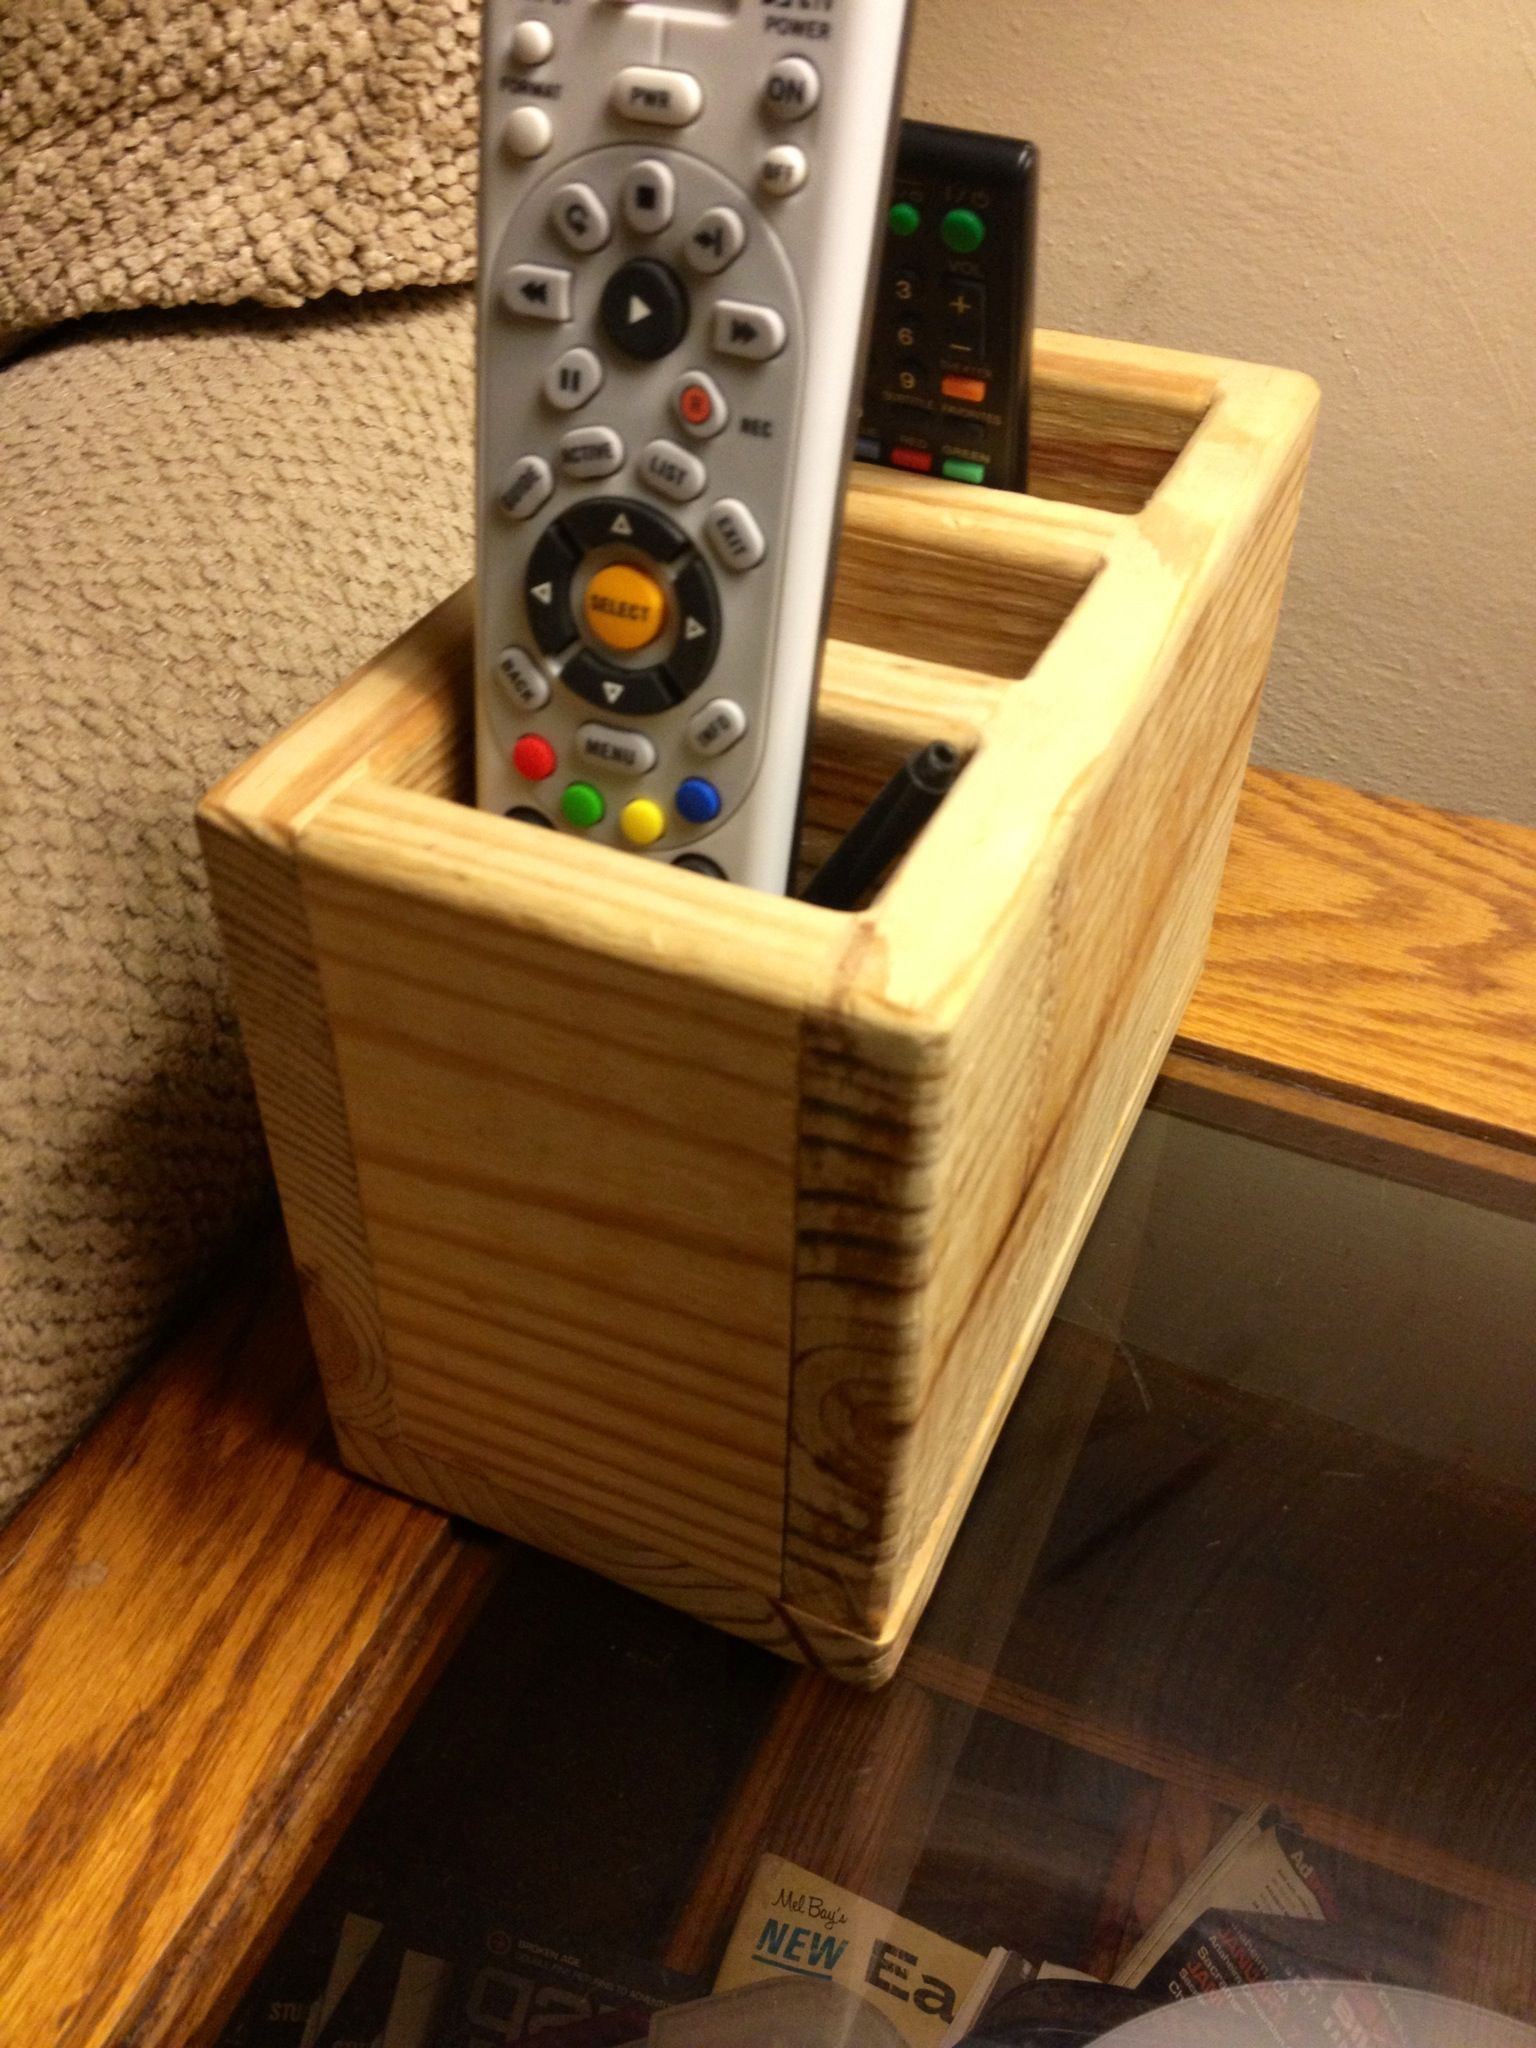 Remote control holder | Things I have made. | Pinterest | Remote ...